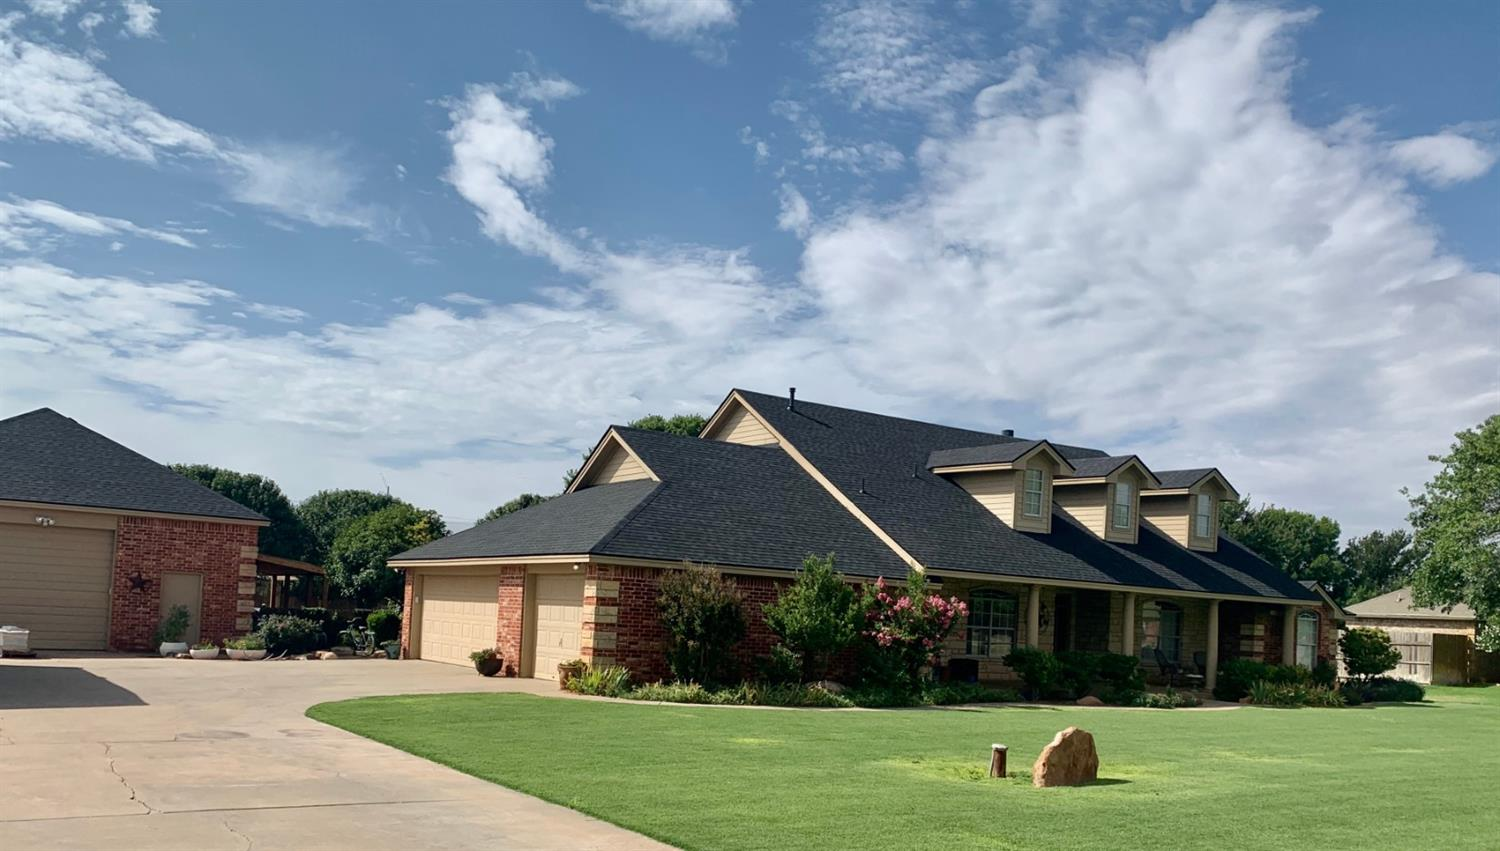 You can have it all! This remarkable home in Pine Grove Estates has 5 bedrooms, 4 bathrooms. Great open concept inside. It sits on almost an acre, and the backyard is prime for outdoor life, with a 30'x30' shop and 35'x17' man cave included. New roof installed week of 7/15/2020